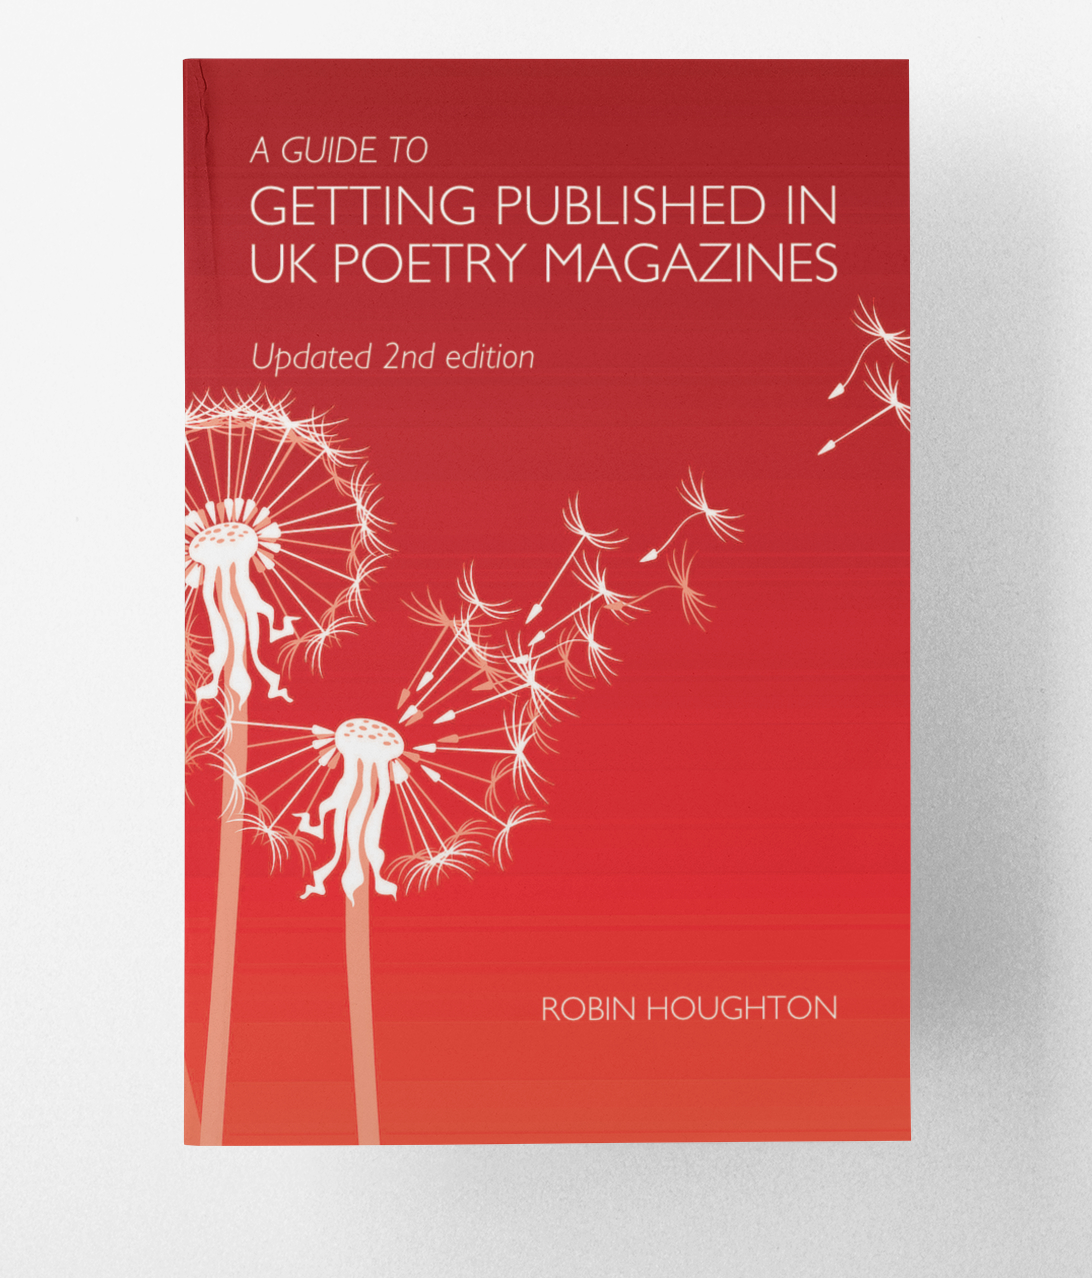 A guide to Getting Published in UK Poetry Magazines by Robin Houghton, 2nd edition